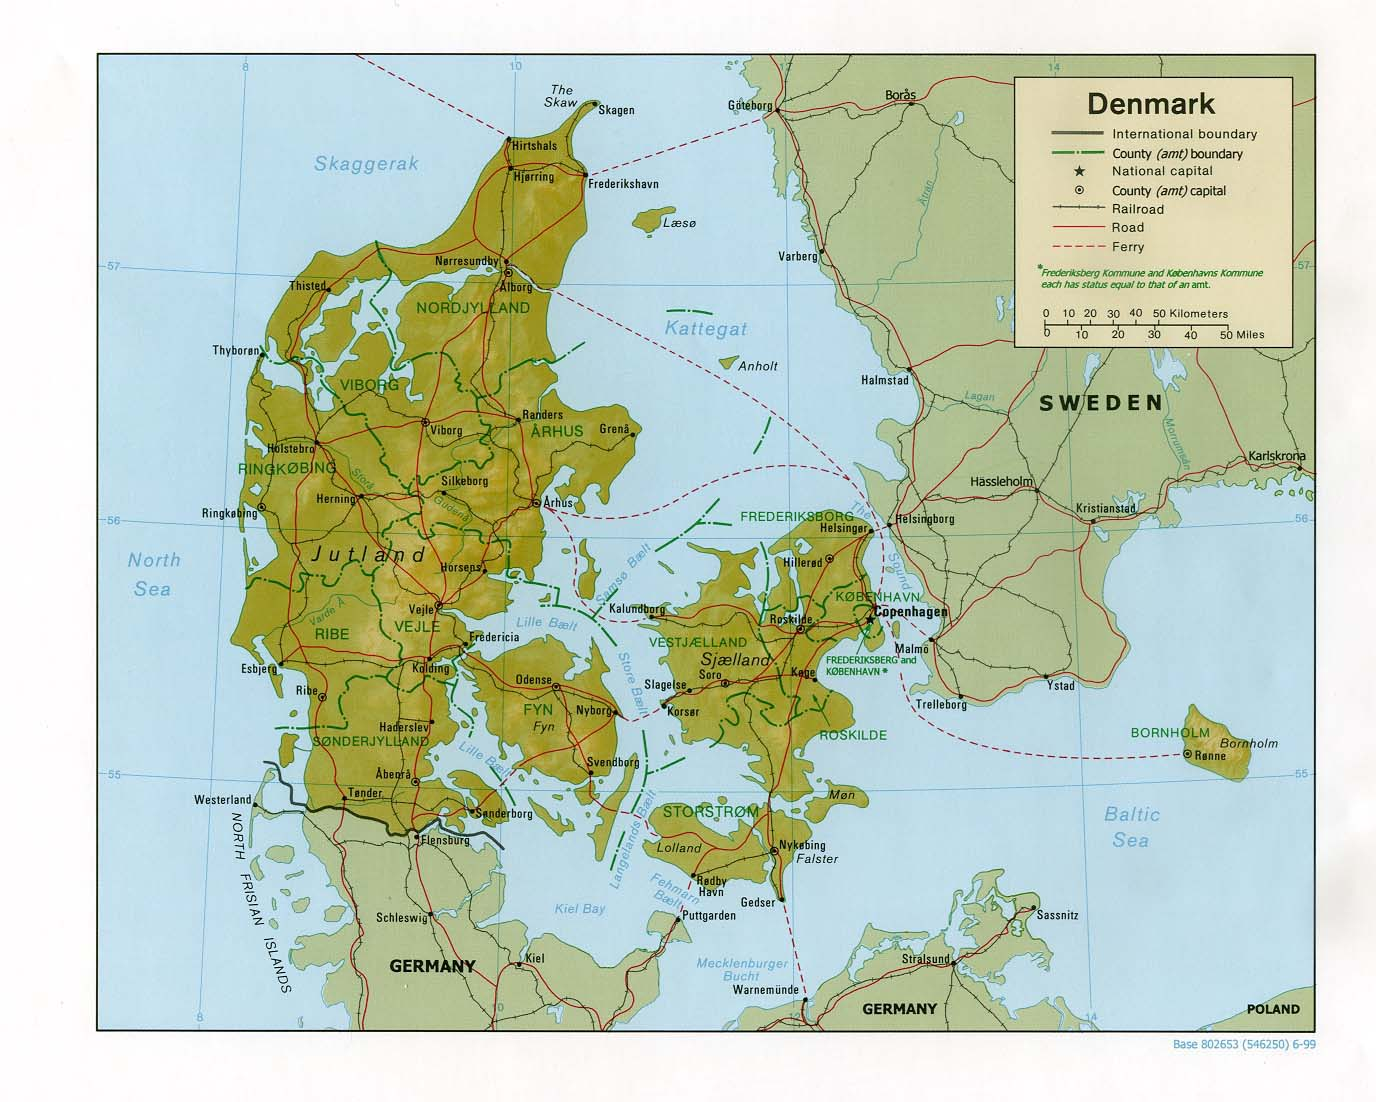 Relief and administrative map of Denmark Denmark relief and